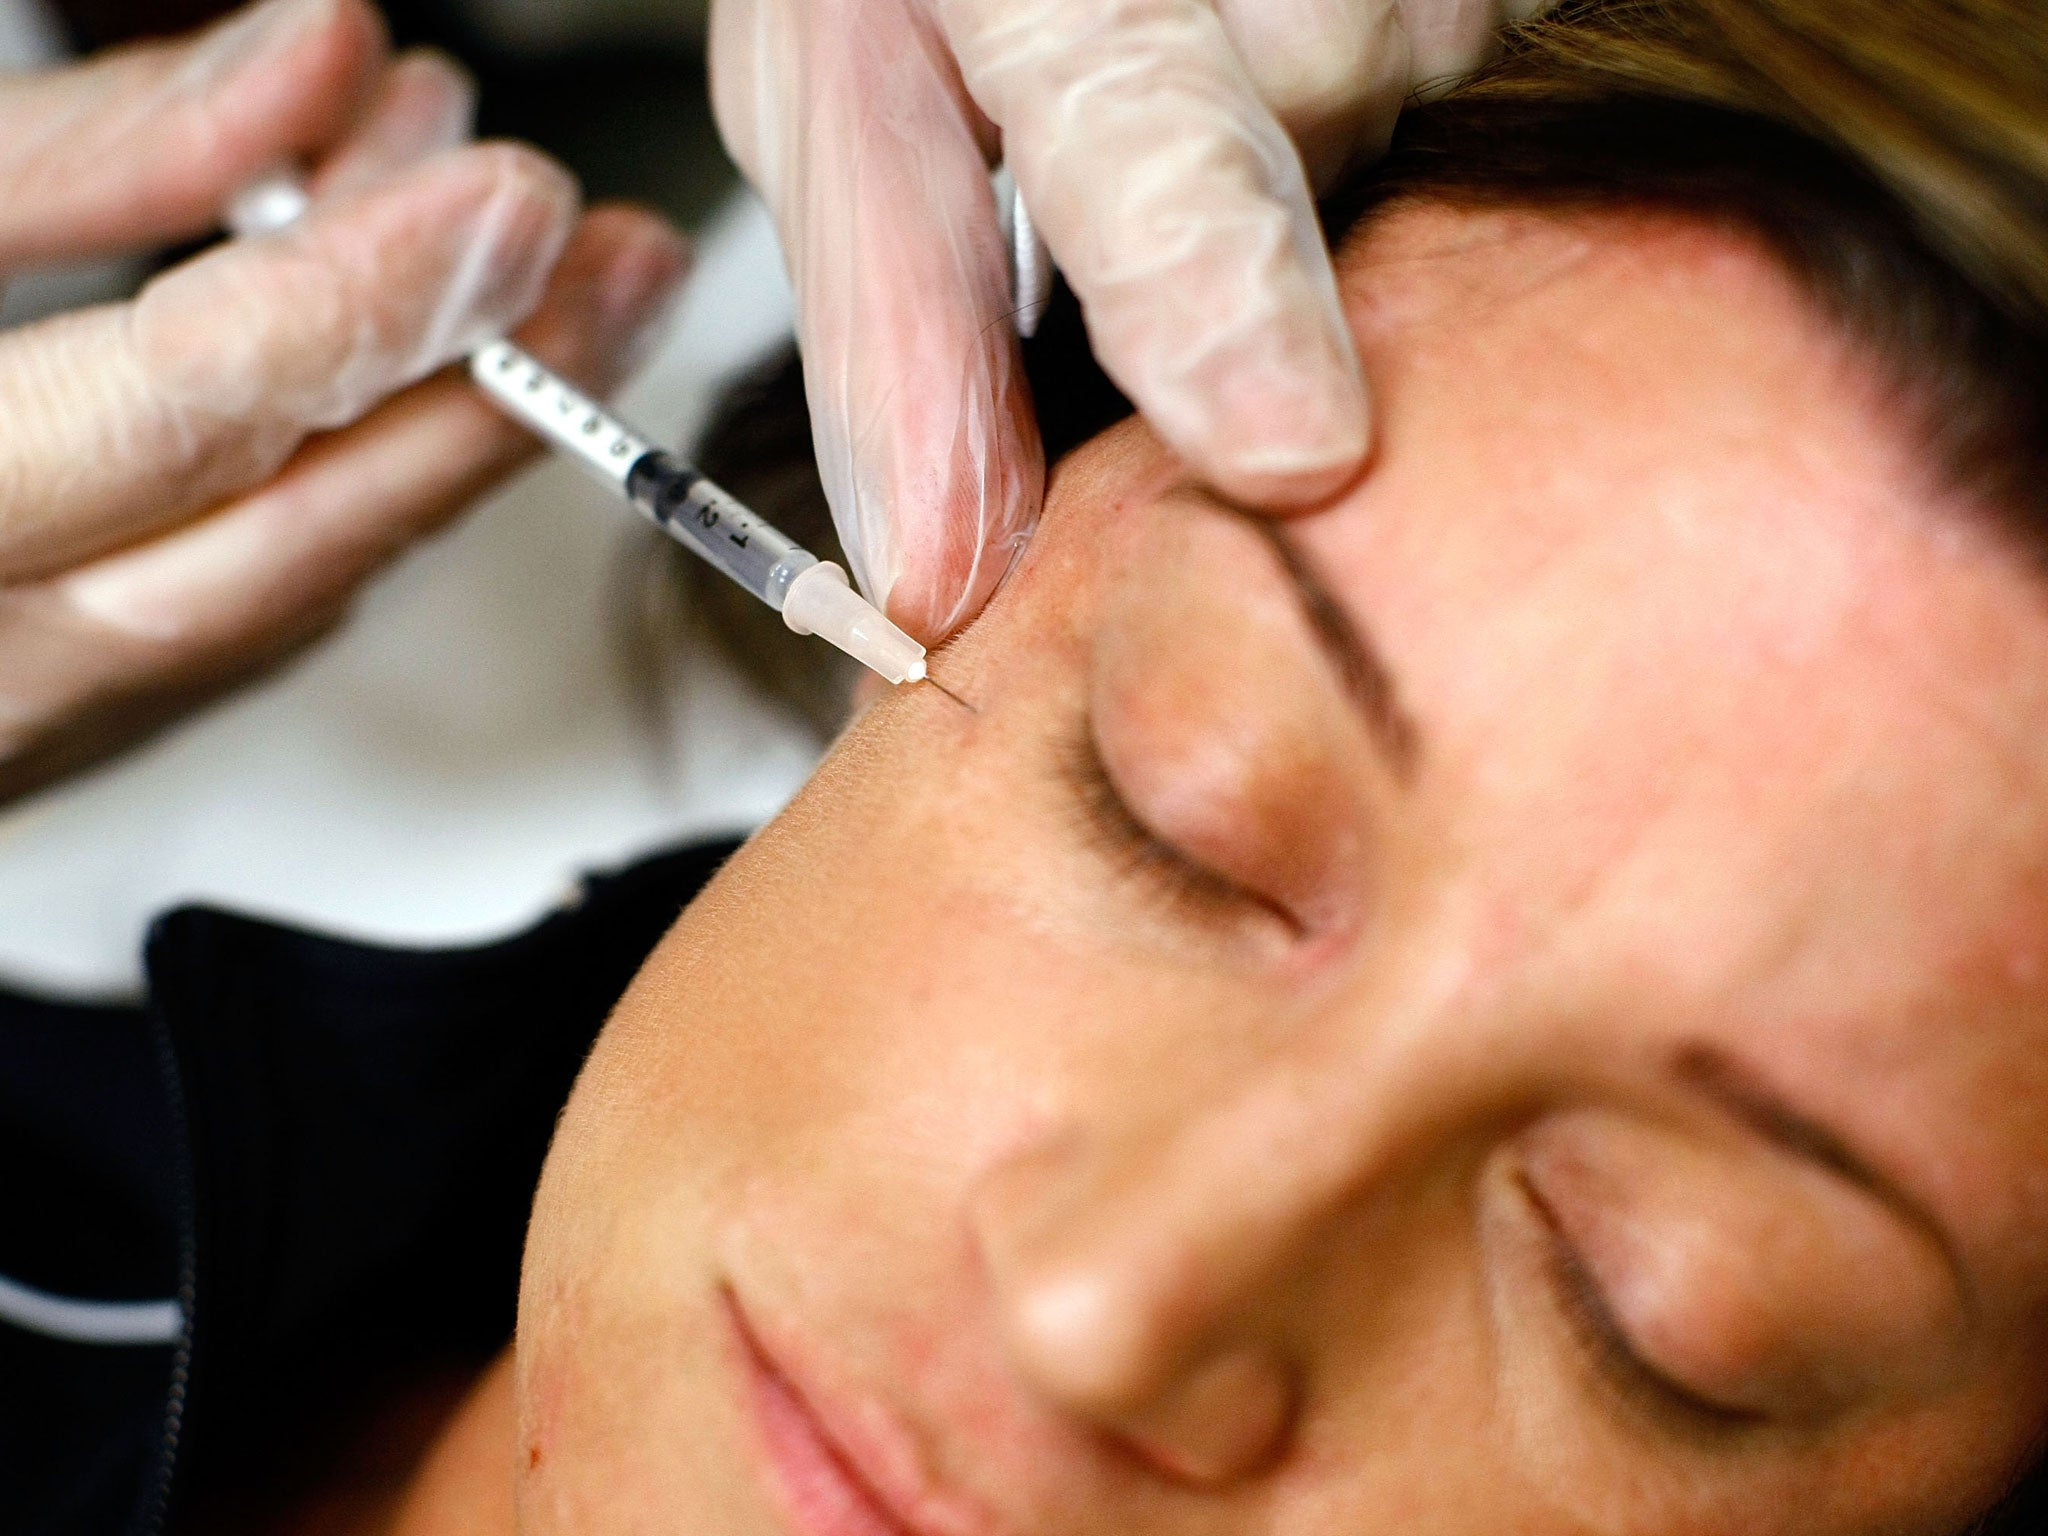 Cosmetic fillers can cause blindness when injected into the